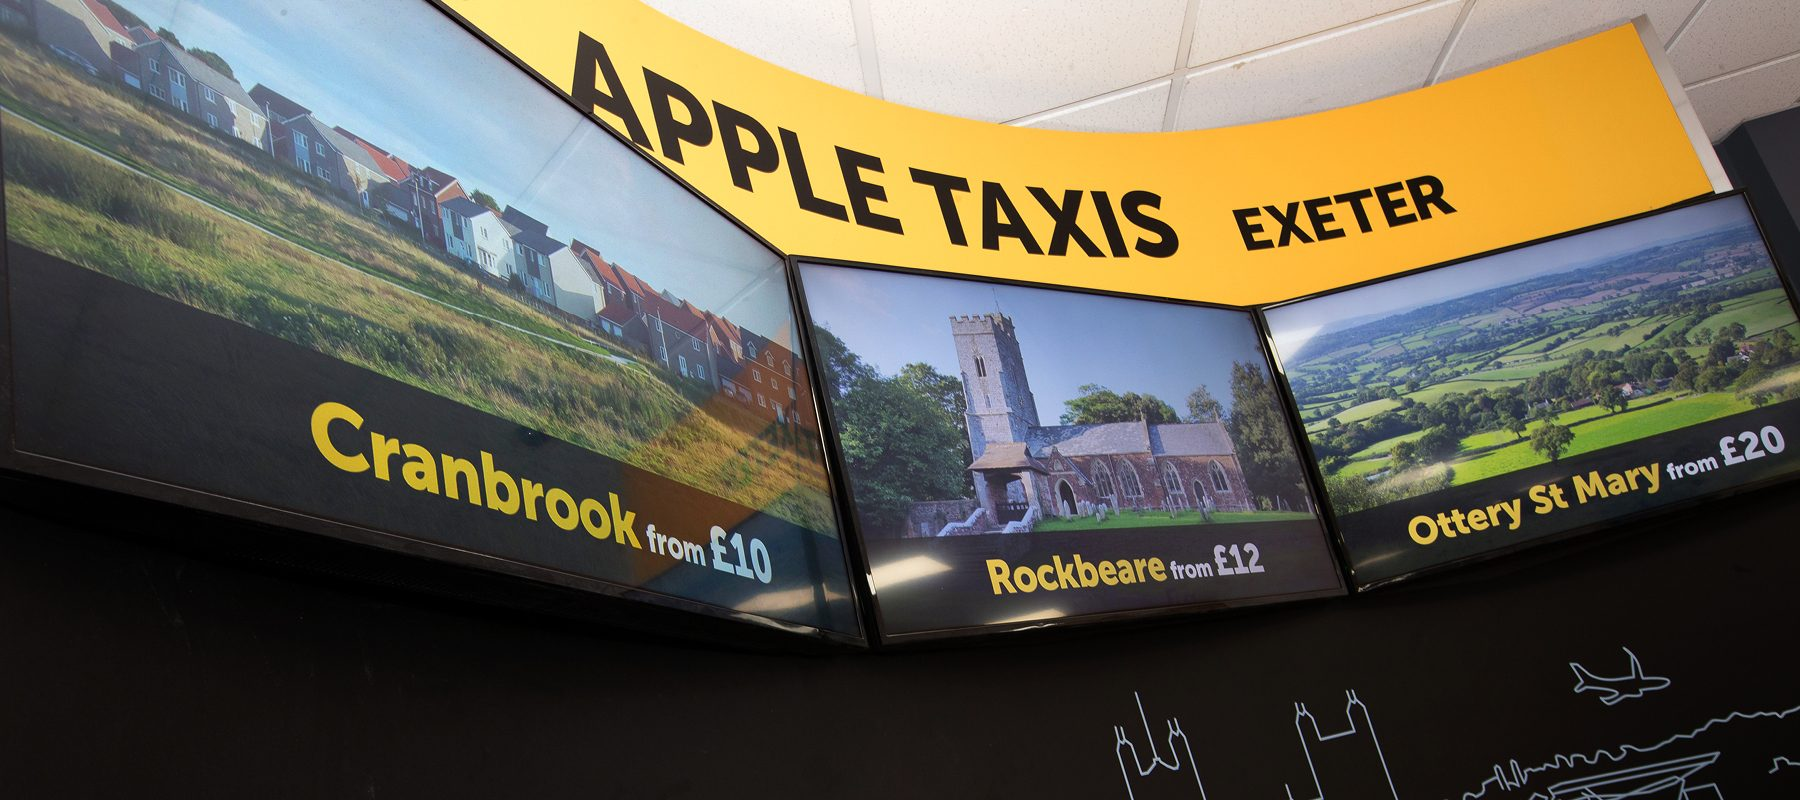 apple taxis exeter digital signage cranbrook rockbeare ottery st mary